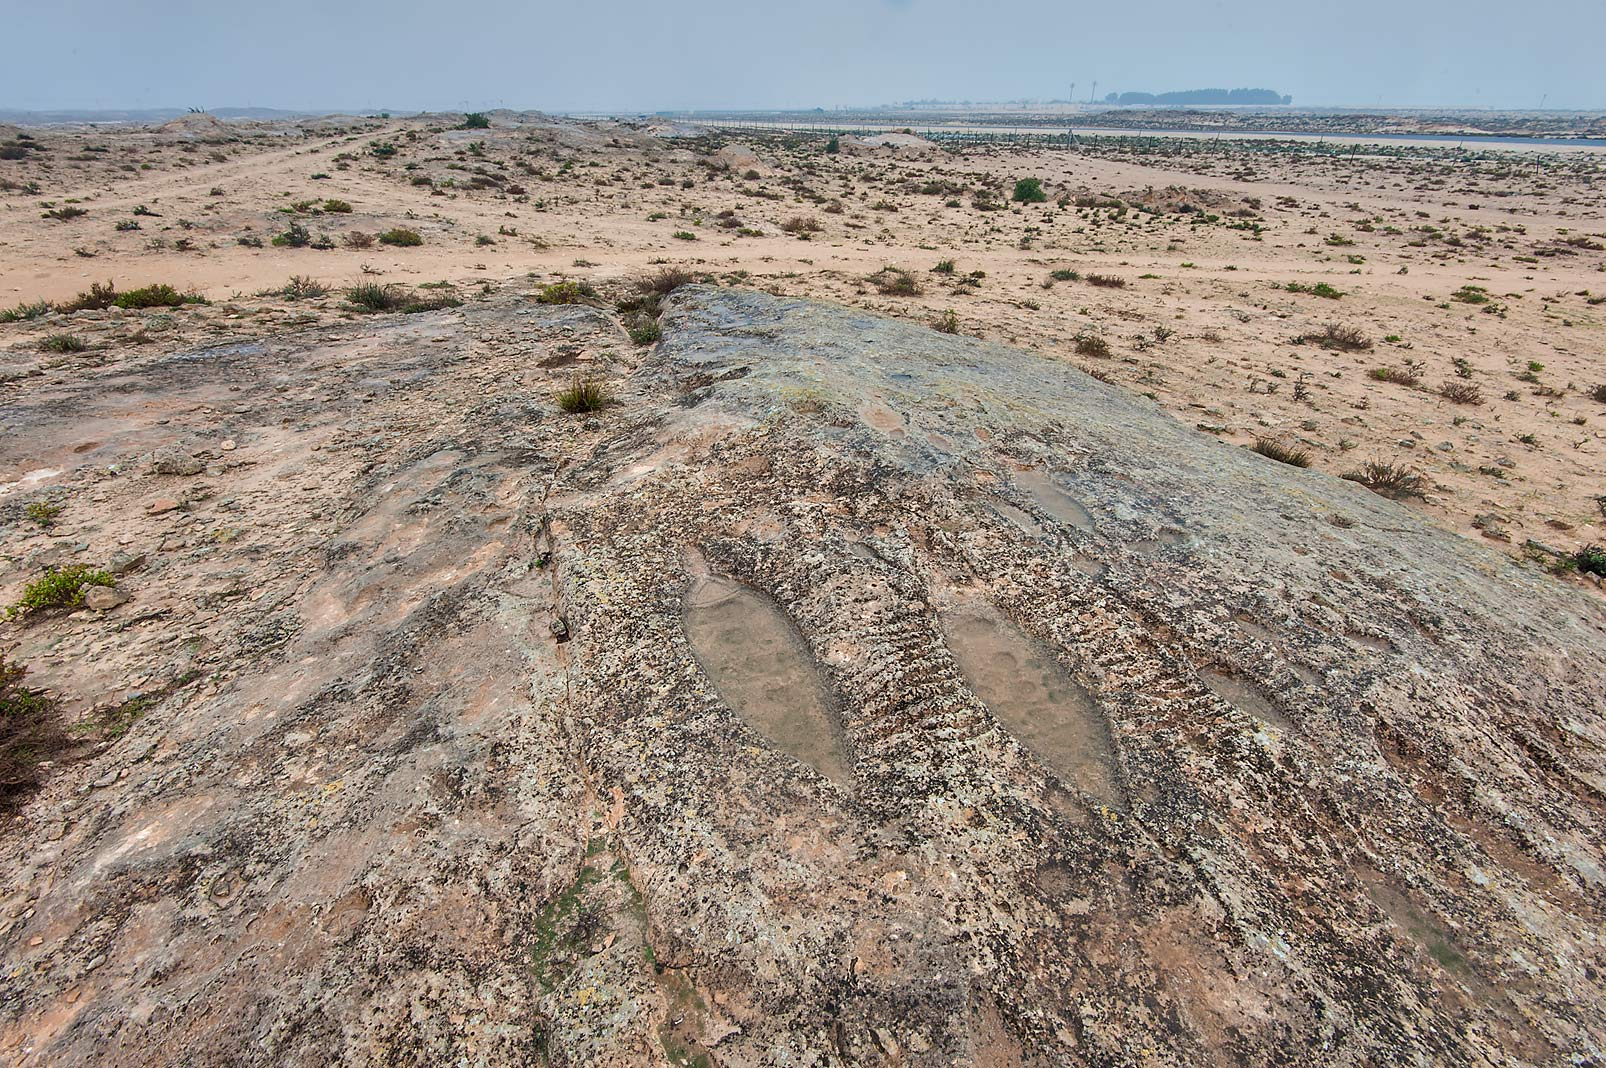 Rock carvings of fishing boats at rain on a rocky...site, on north-eastern coast. Qatar